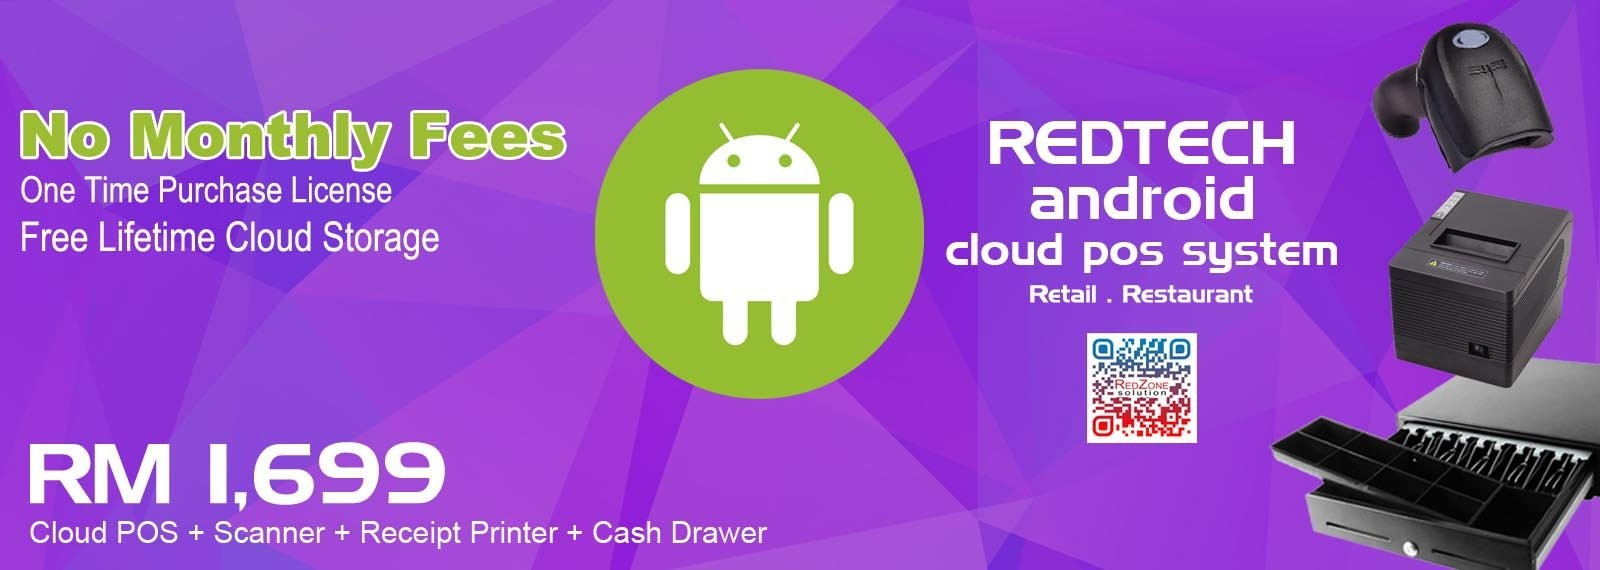 RedTech Android Cloud POS System